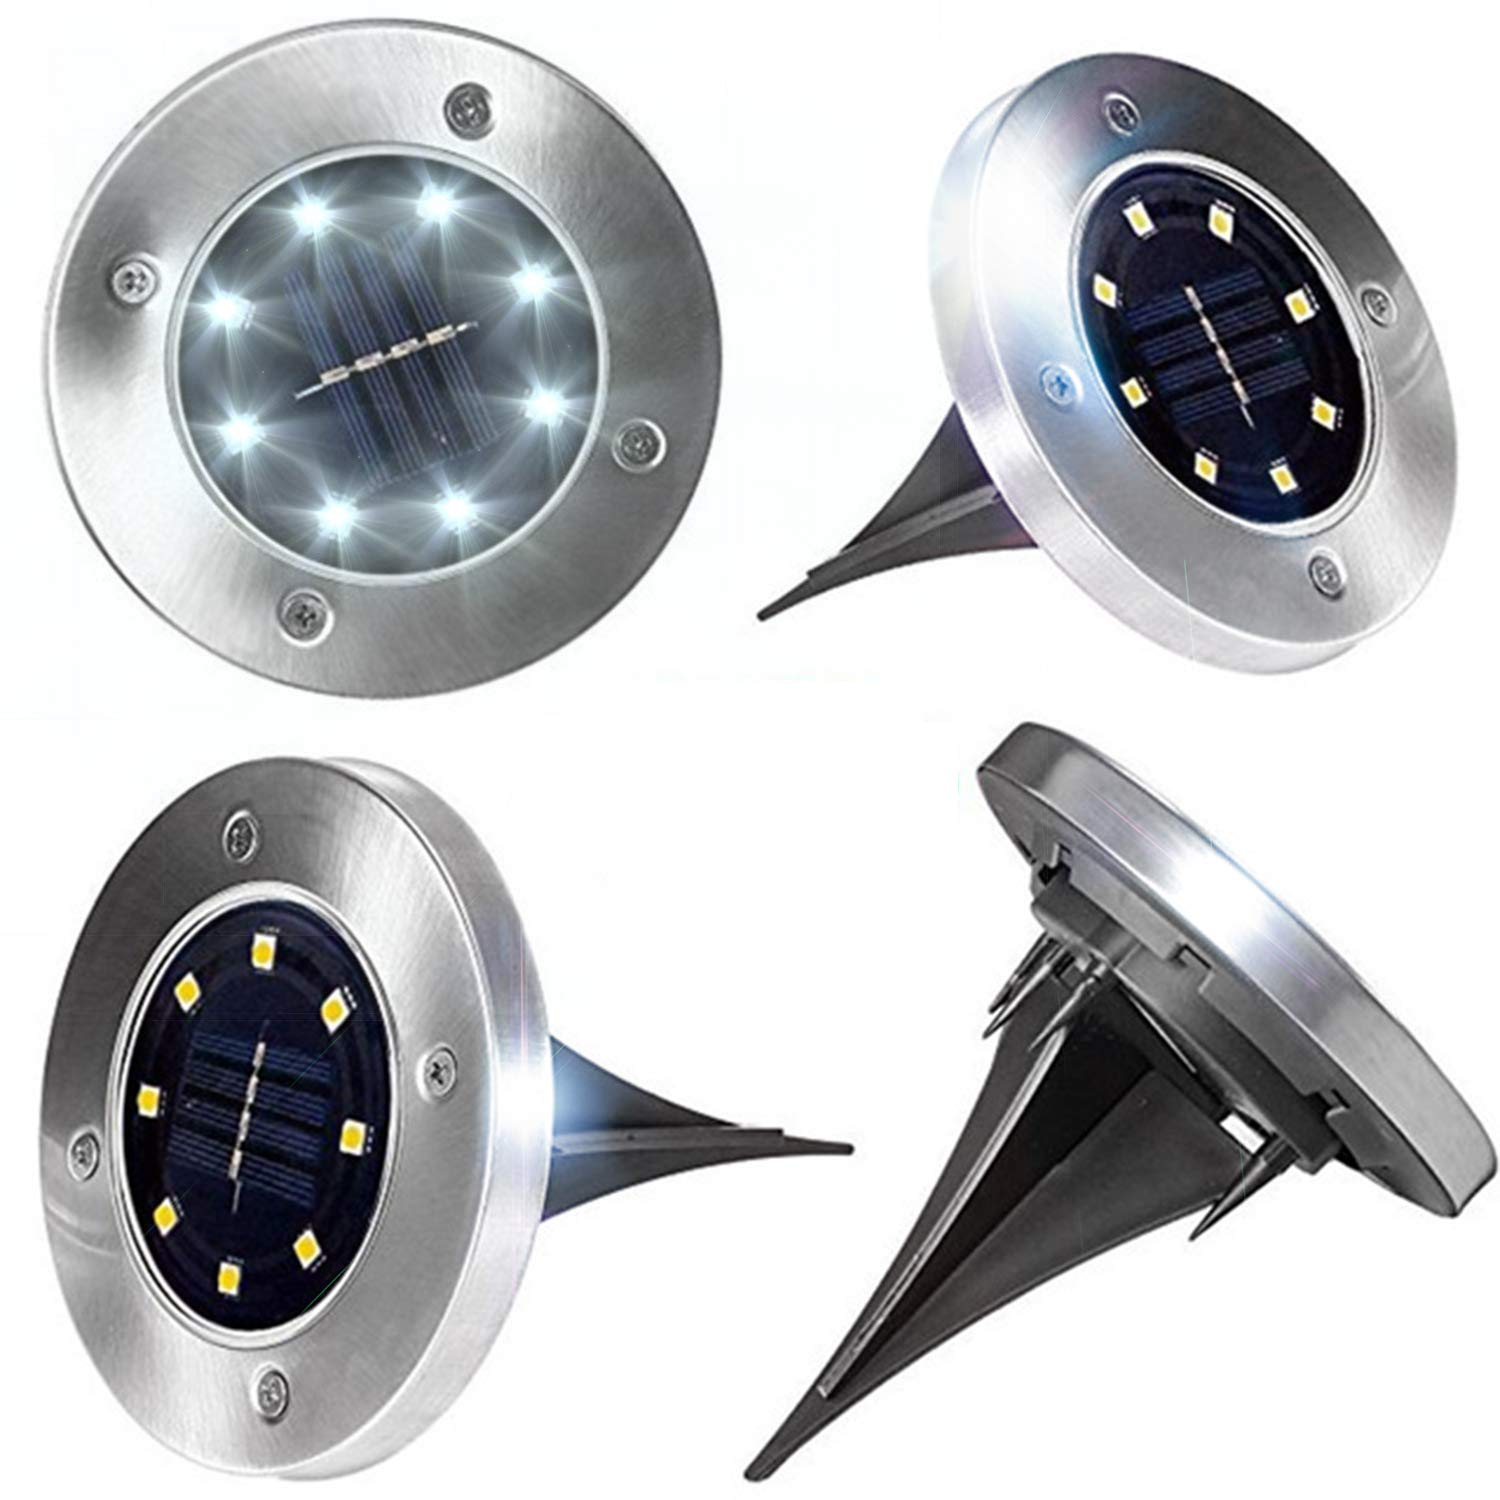 Solar Ground Disk Light,4 Pack Waterproof Outdoor Ground Light Stainless Steel with 8 LED for Garden Pathway Walkway Yard